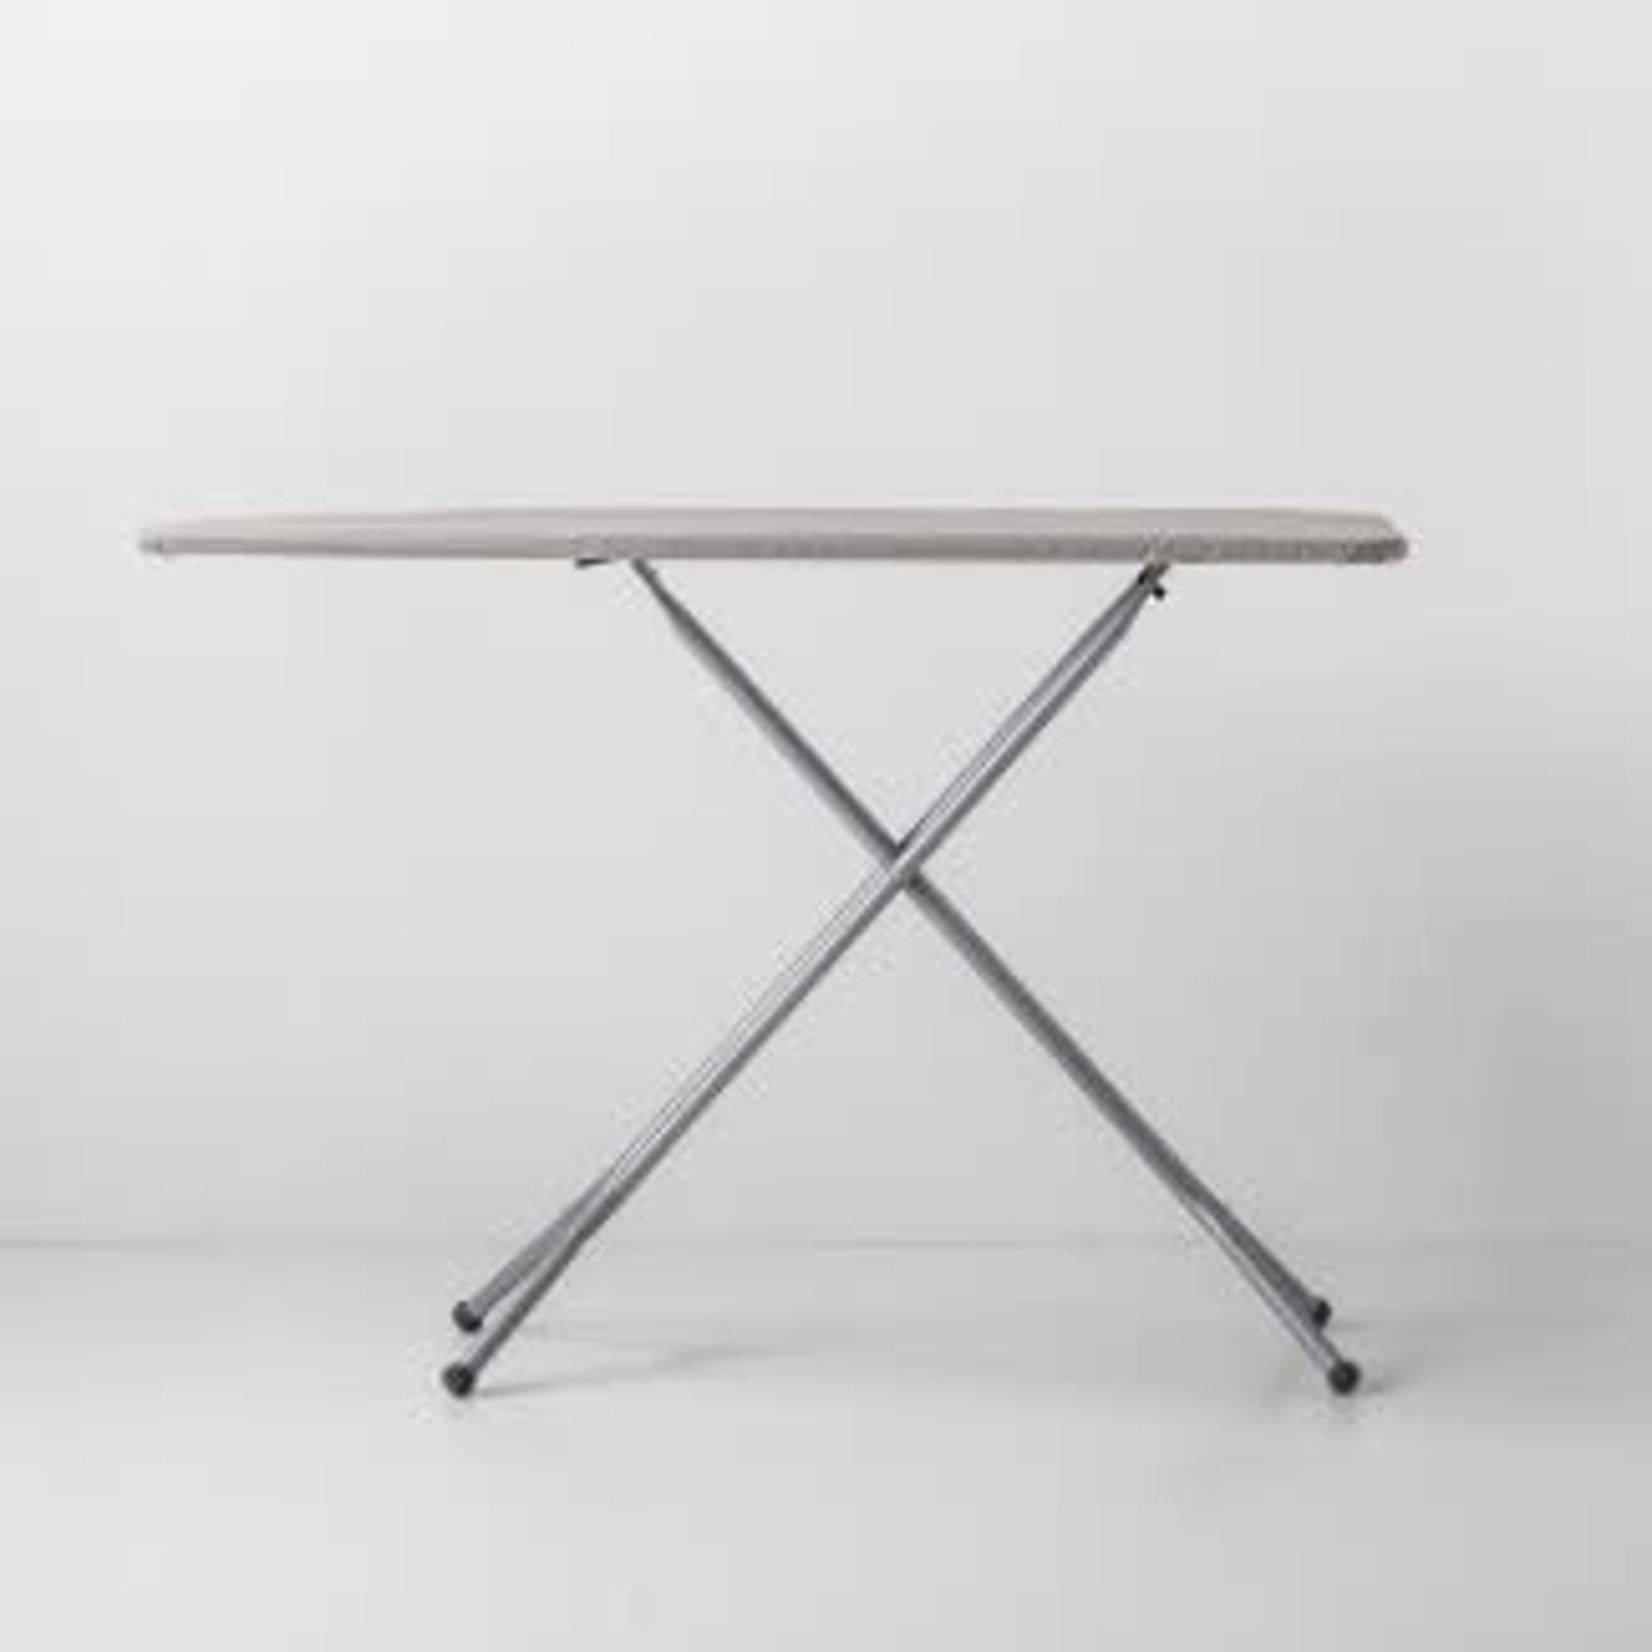 Standard Ironing Board Light Gray Metal *Missing one foot cover